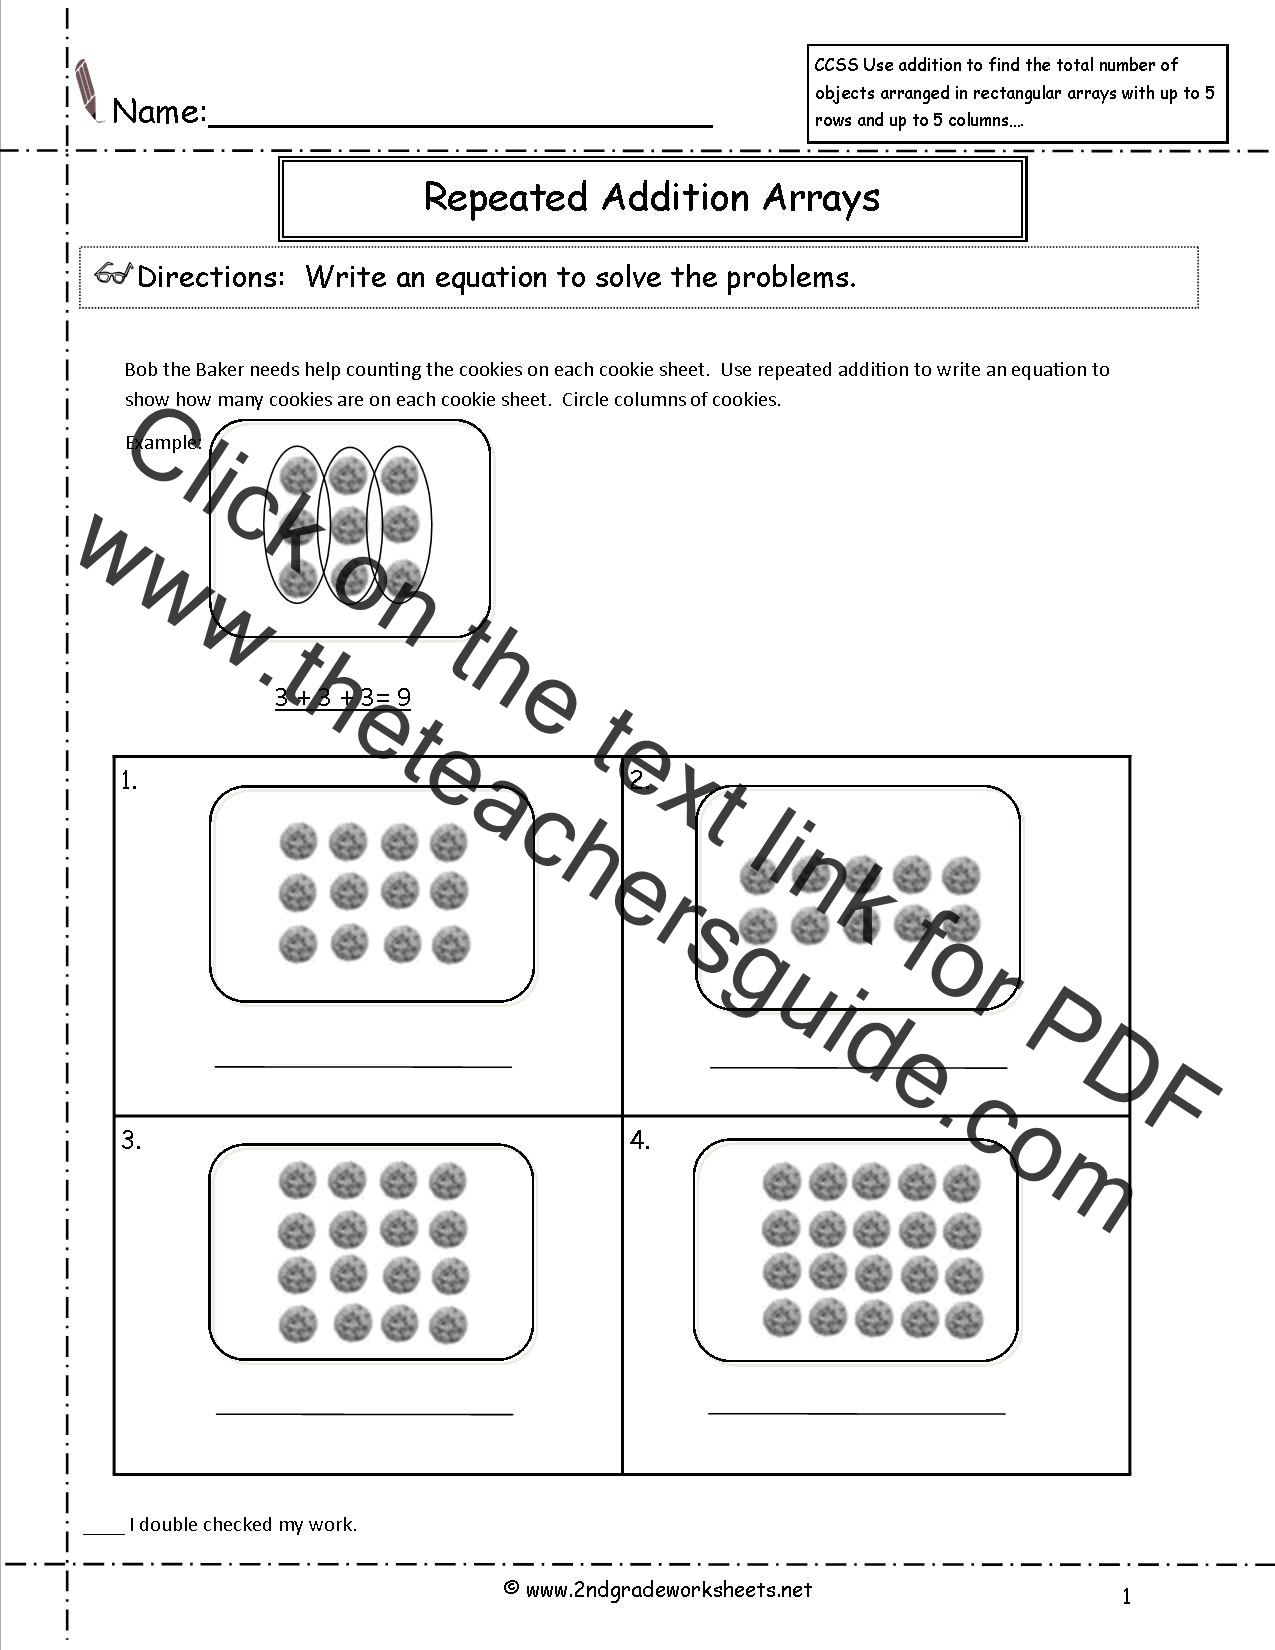 math worksheet : 2nd grade math common core state standards worksheets : Common Core Math Grade 2 Worksheets